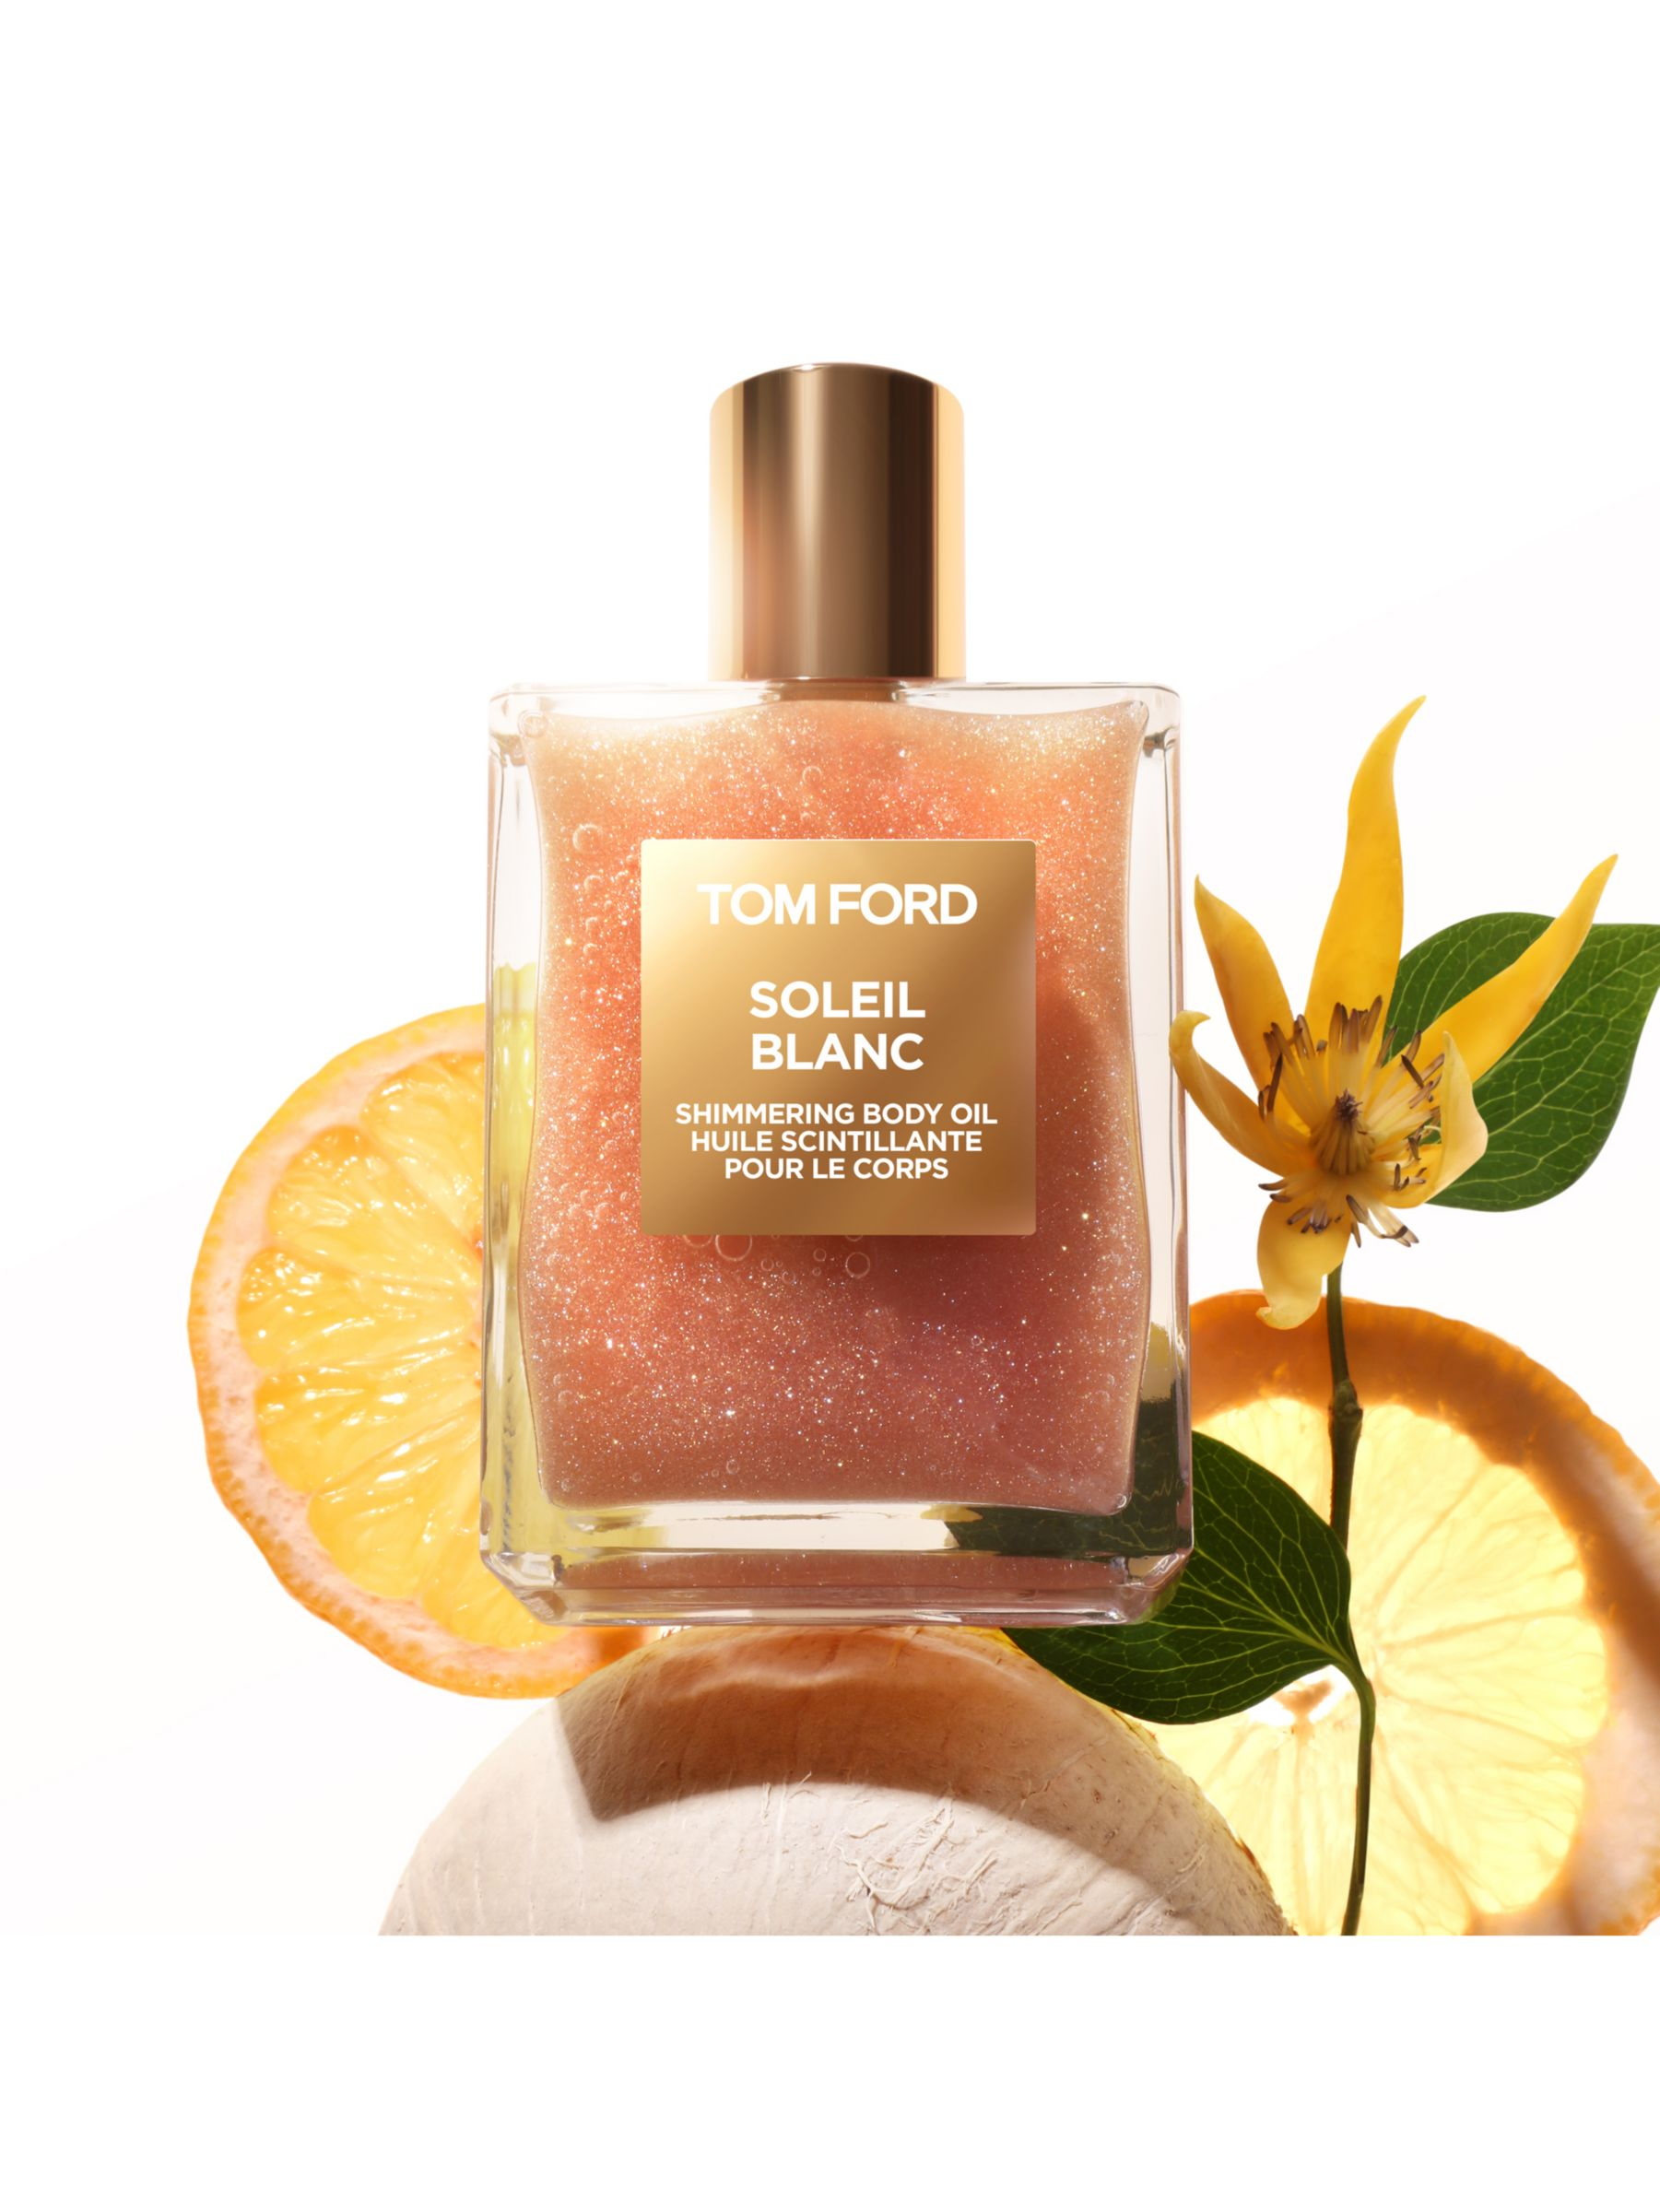 Tom Ford Private Blend Soleil Blanc Shimmer Body Oil Rose Gold 100ml At John Lewis Partners